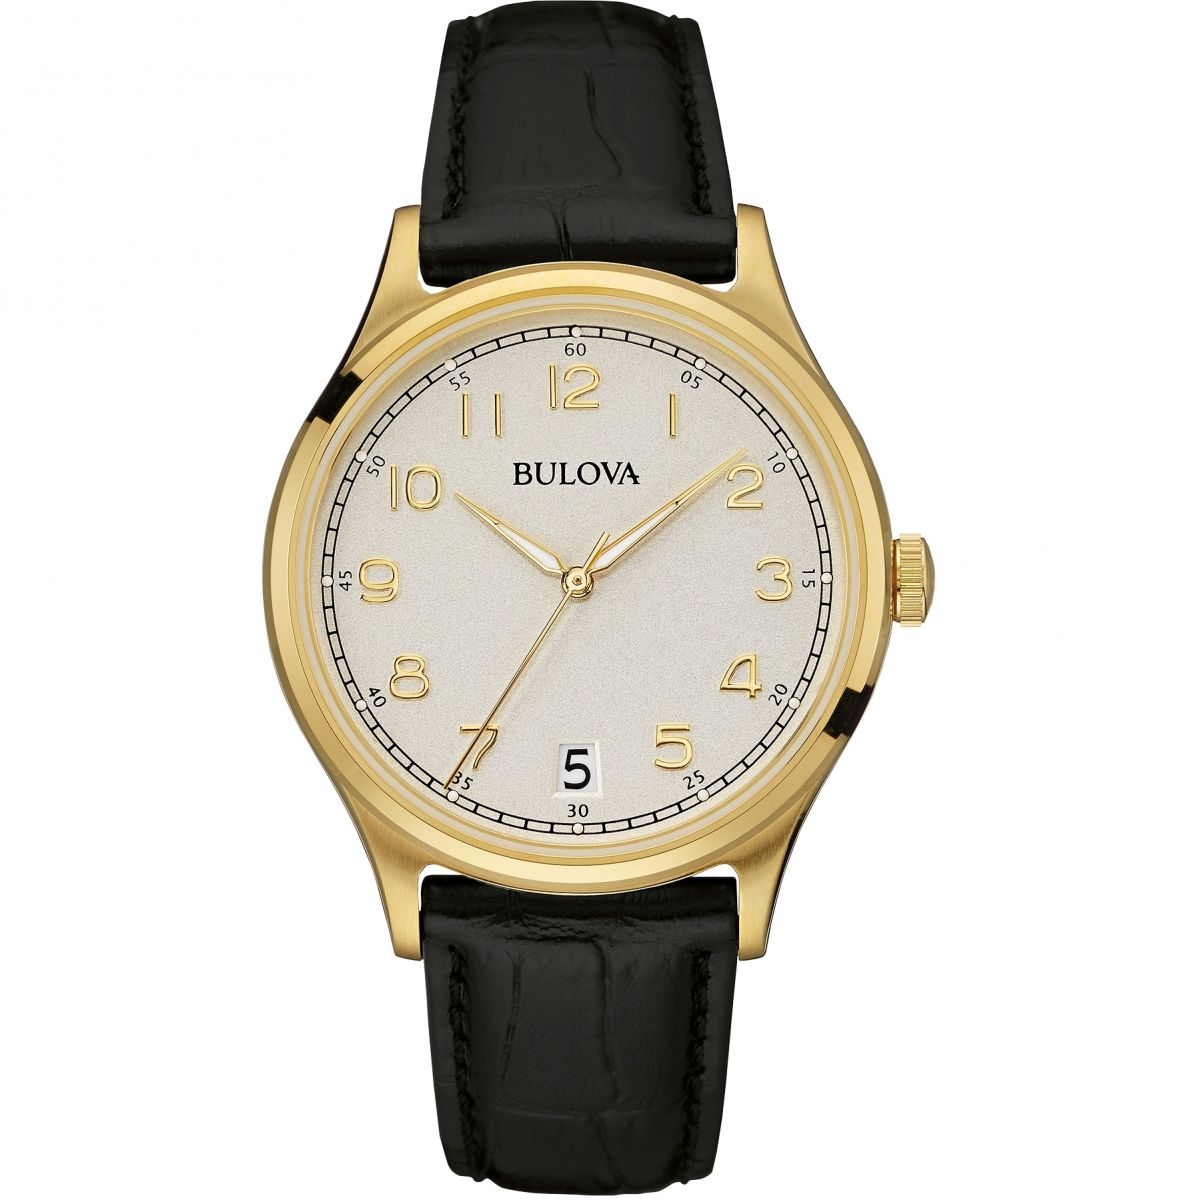 Montres Bulova - La collection - Chic-Time